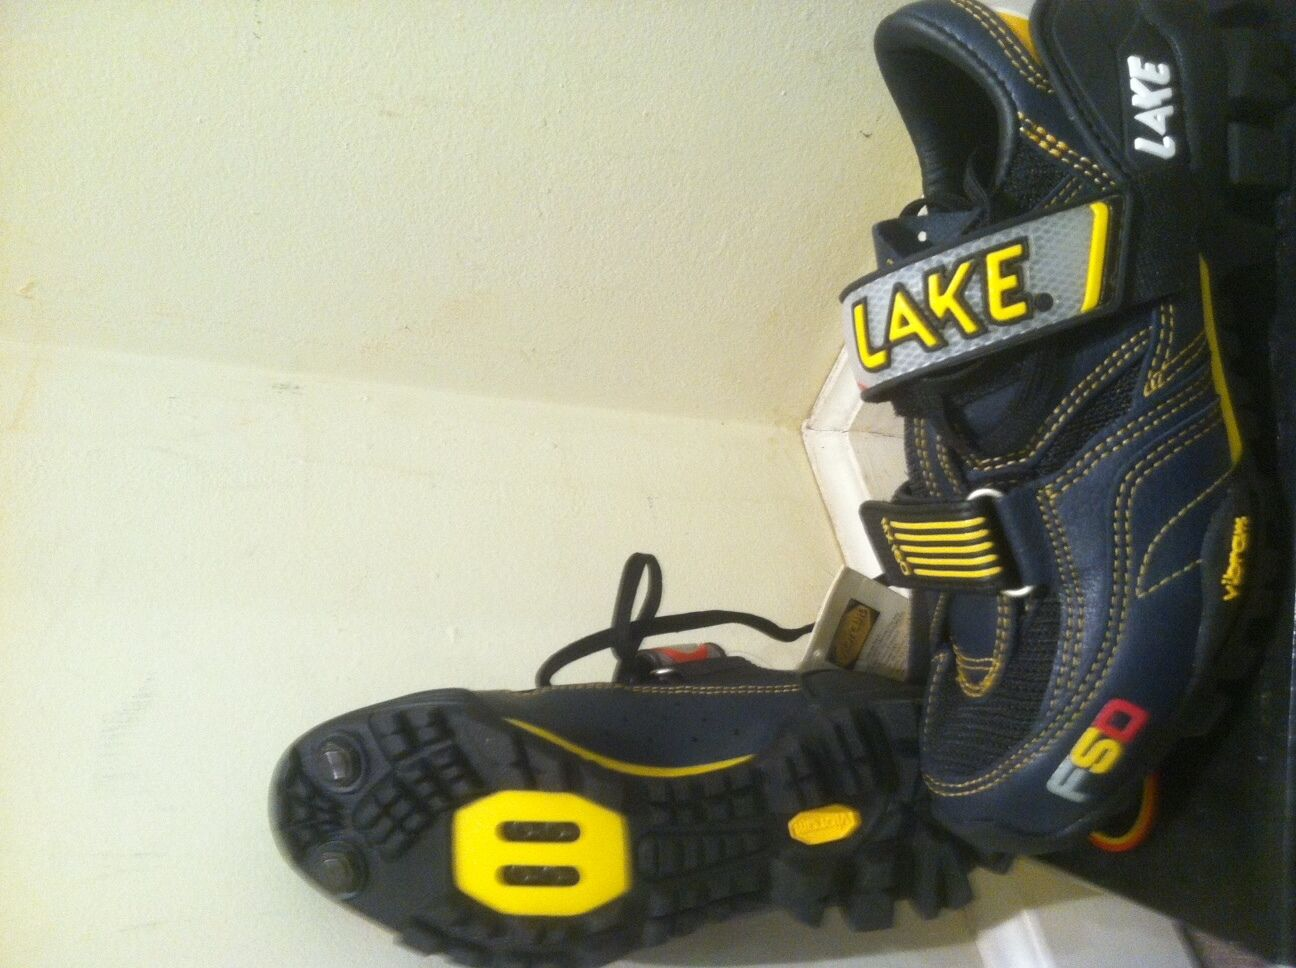 NEW LAKE MX 160 MOUNTAIN SHOES Womens SIZE 37   6 US